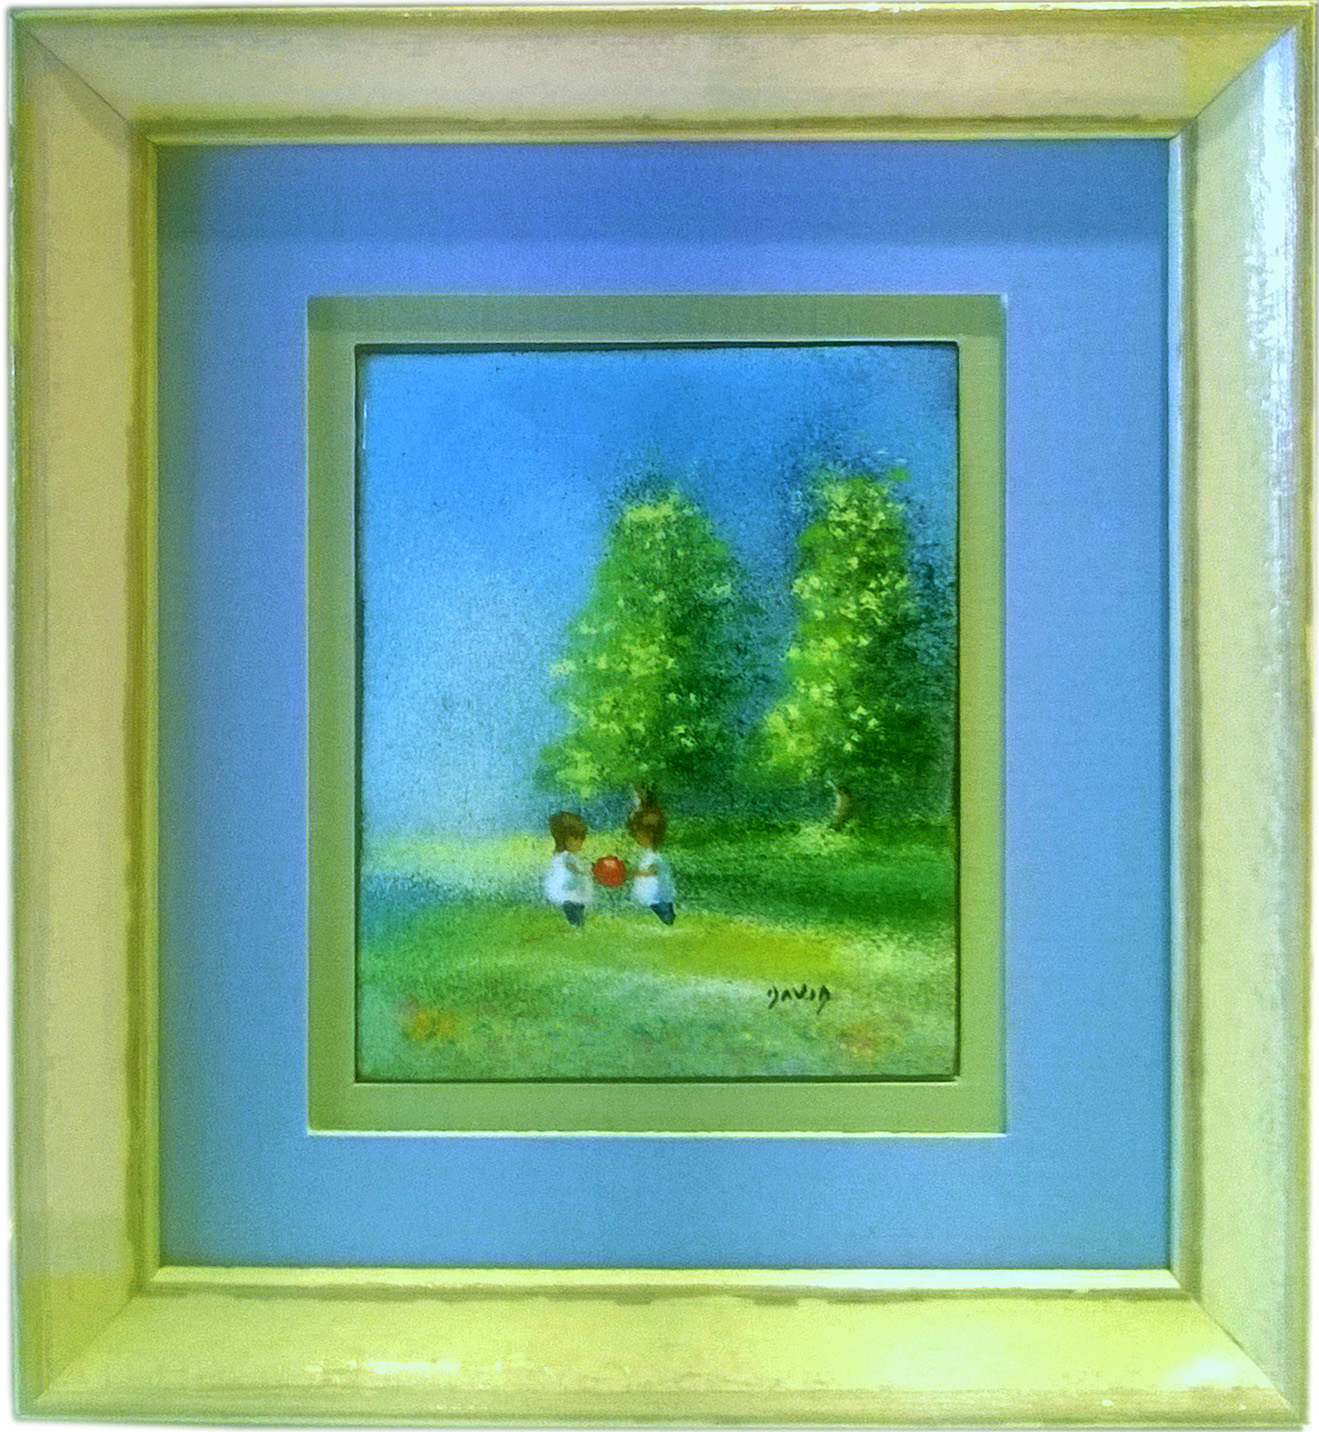 Mini painting custom picture frame